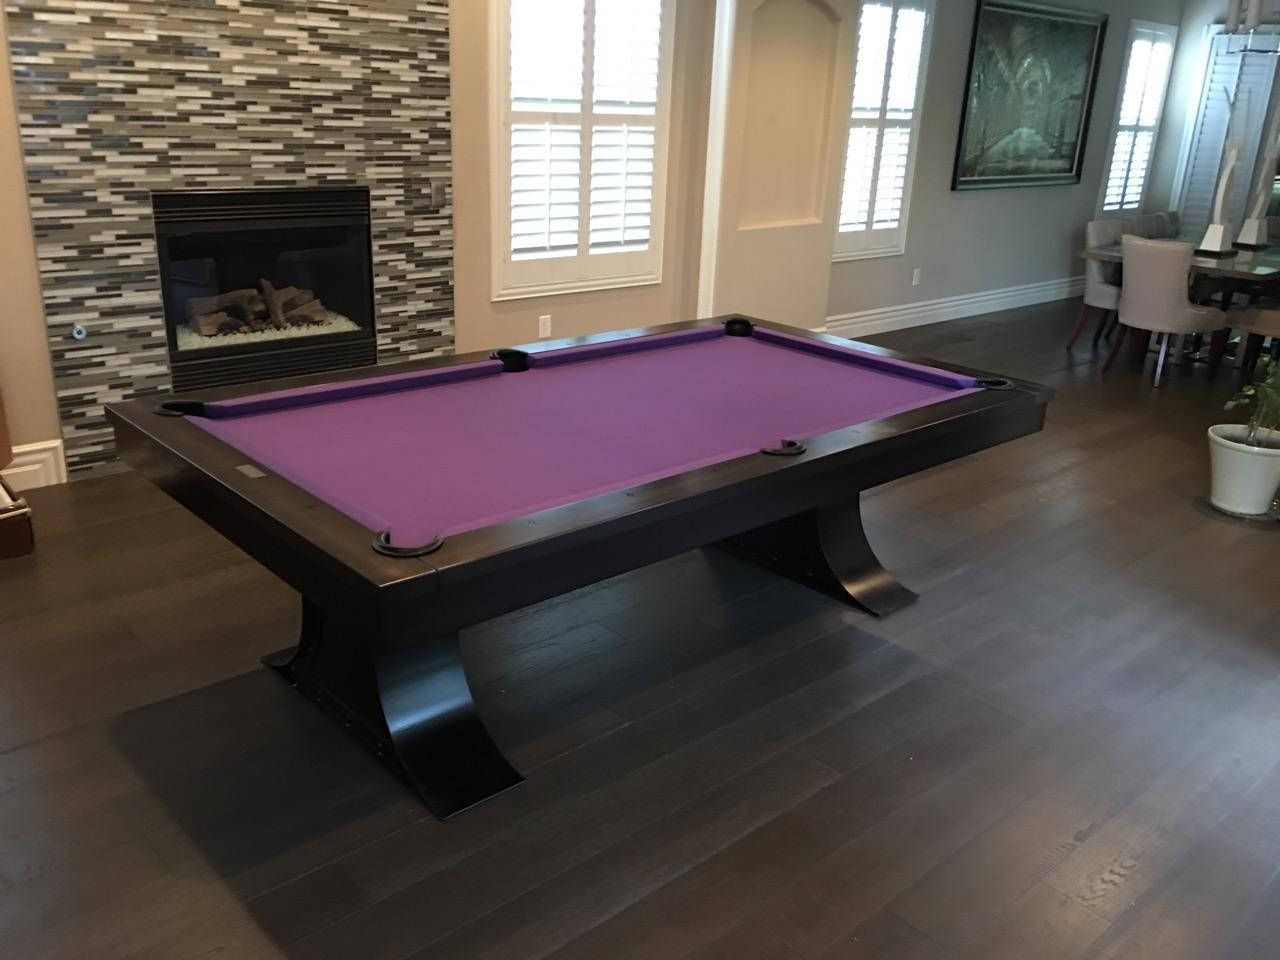 8 Steel Pool Table Furniture Restoration Hardware Inspired Gaming Of Thrones Xane Modern